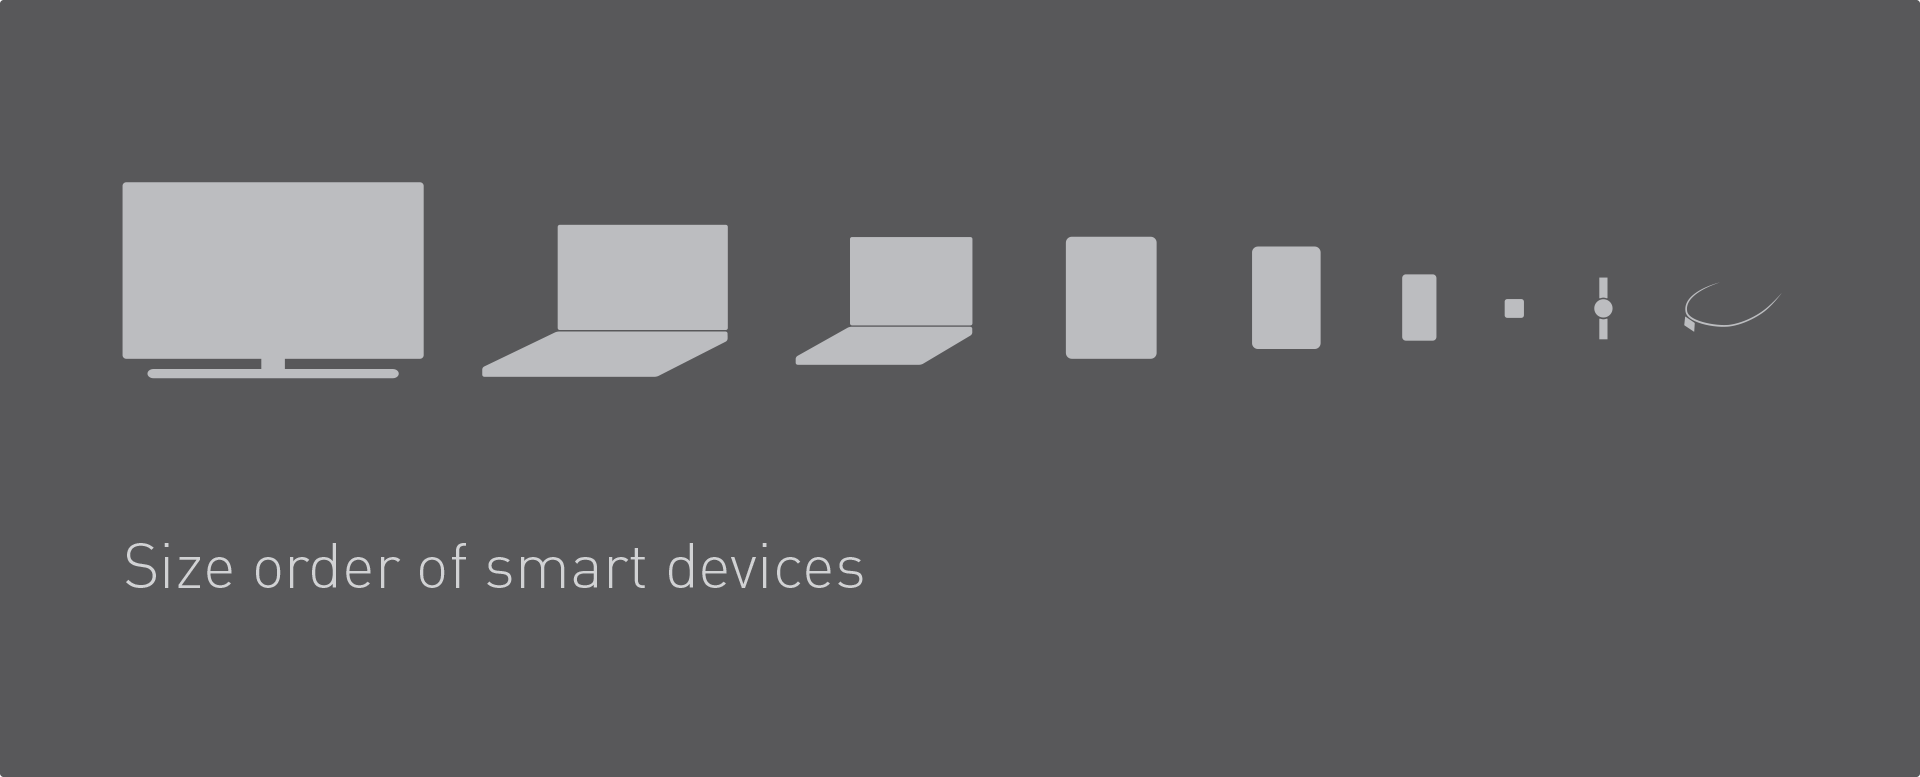 Size order of smart devices